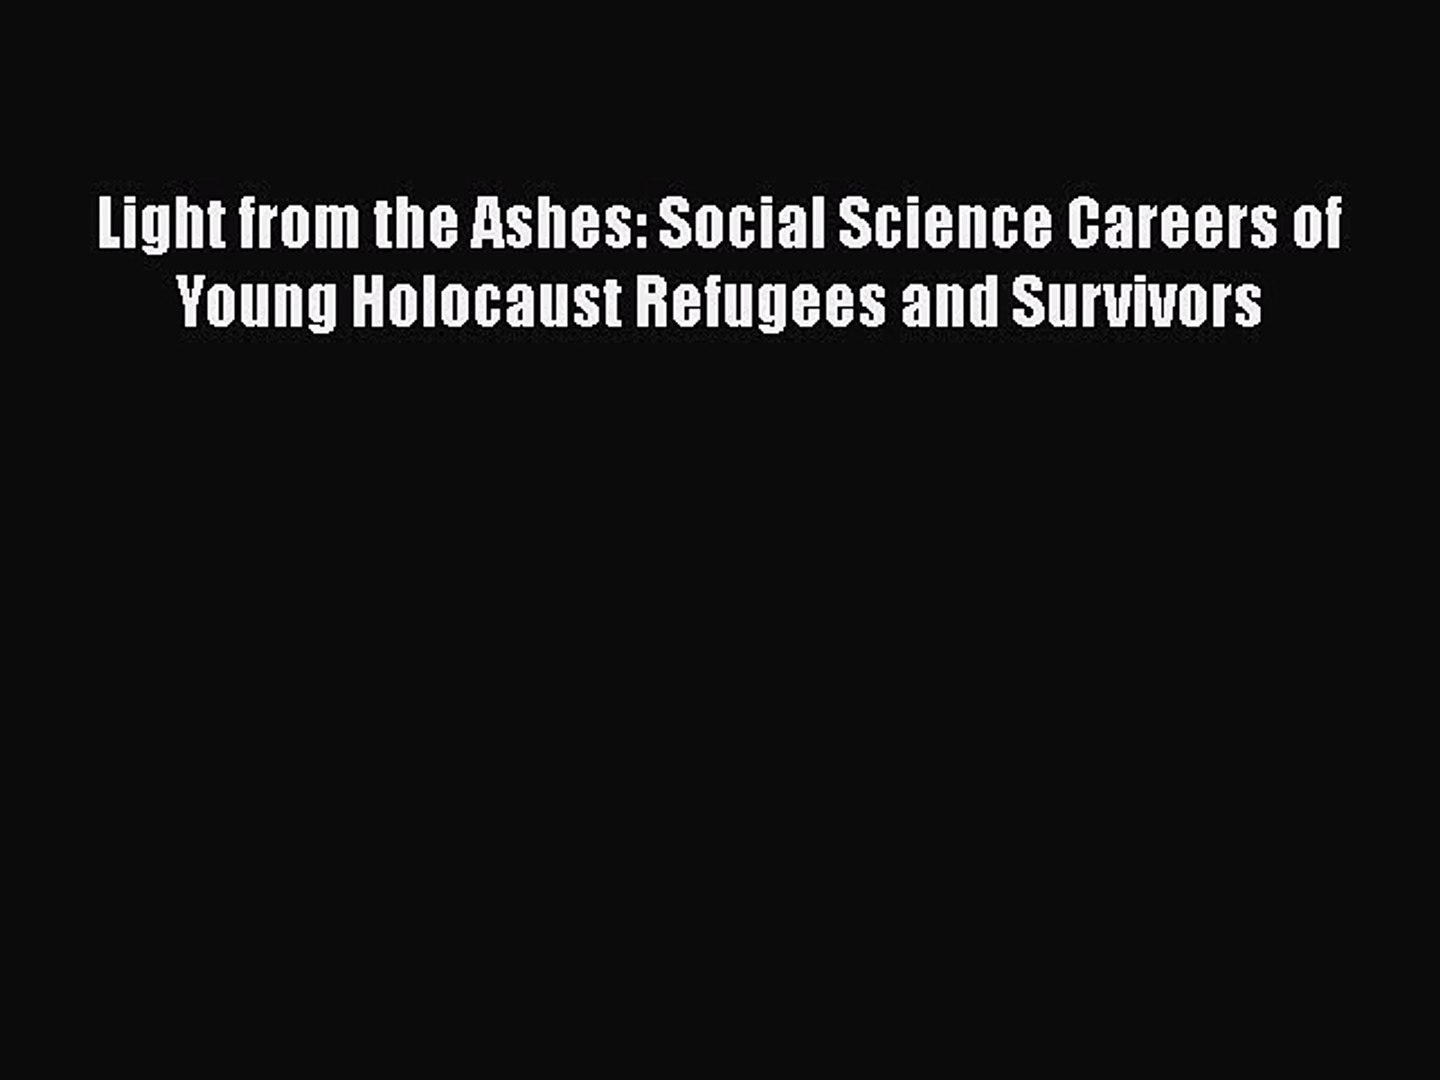 Read Light from the Ashes: Social Science Careers of Young Holocaust Refugees and Survivors